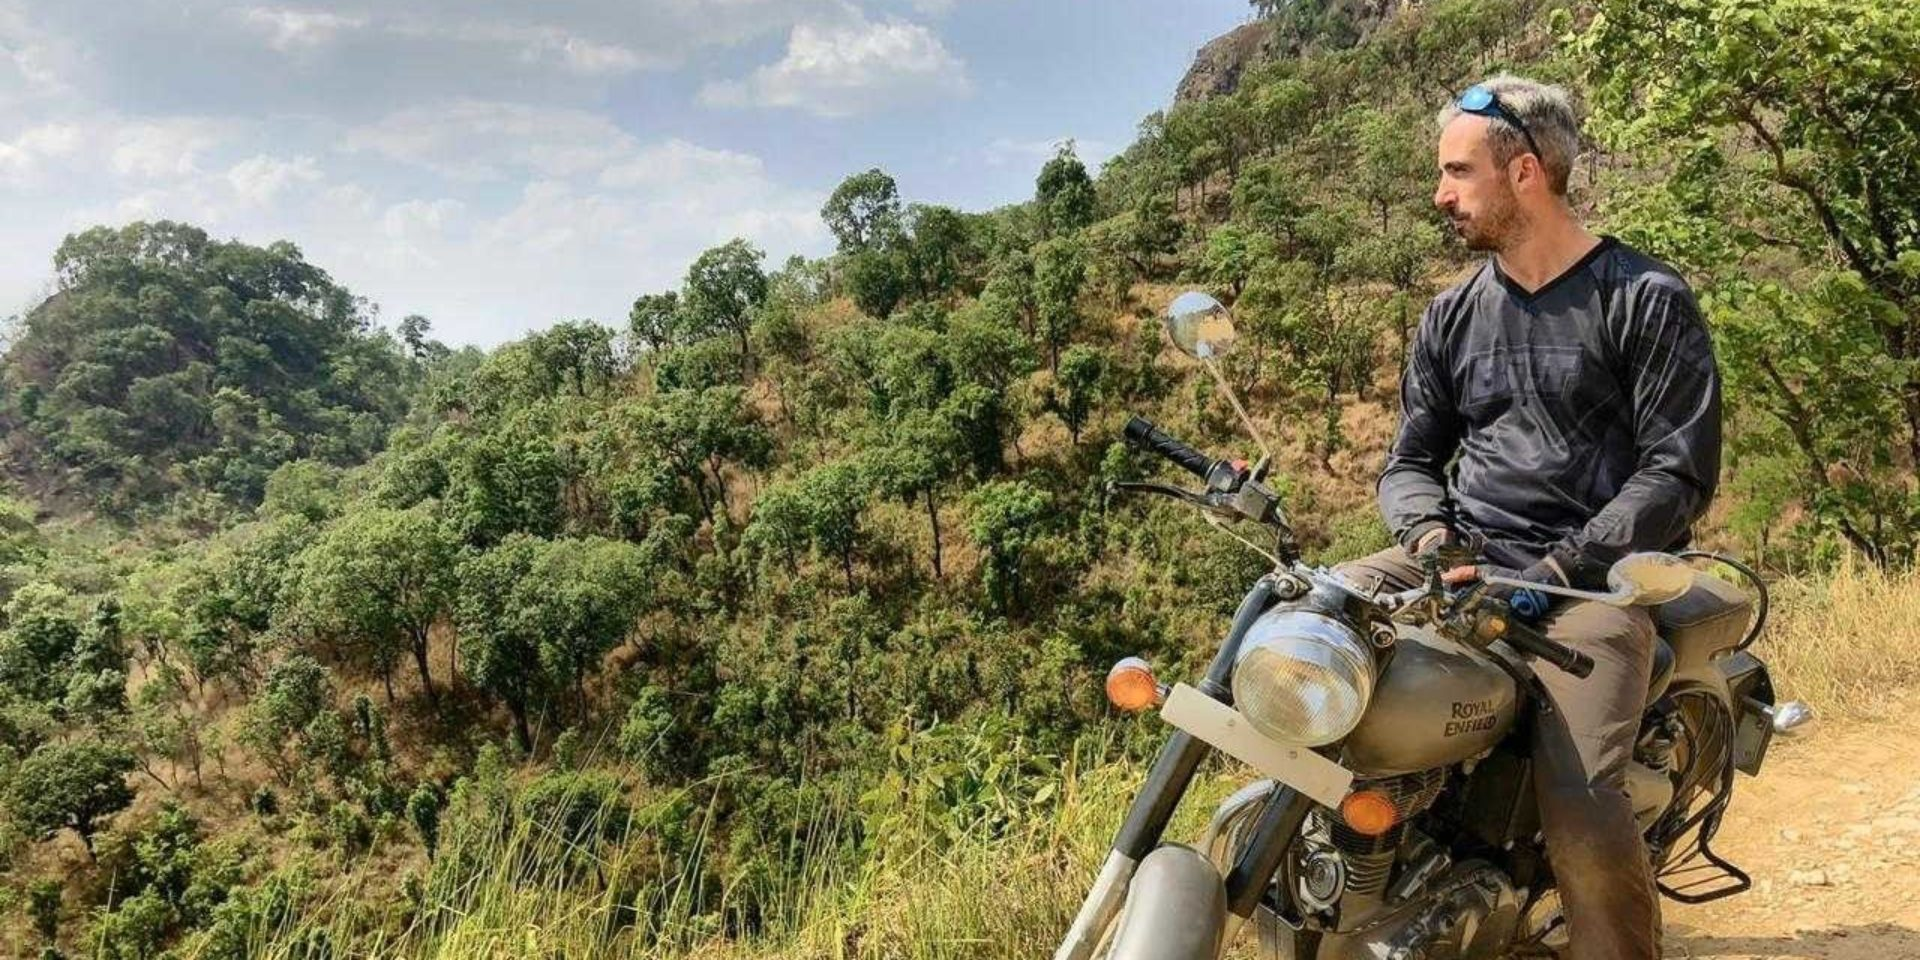 royal enfield off road